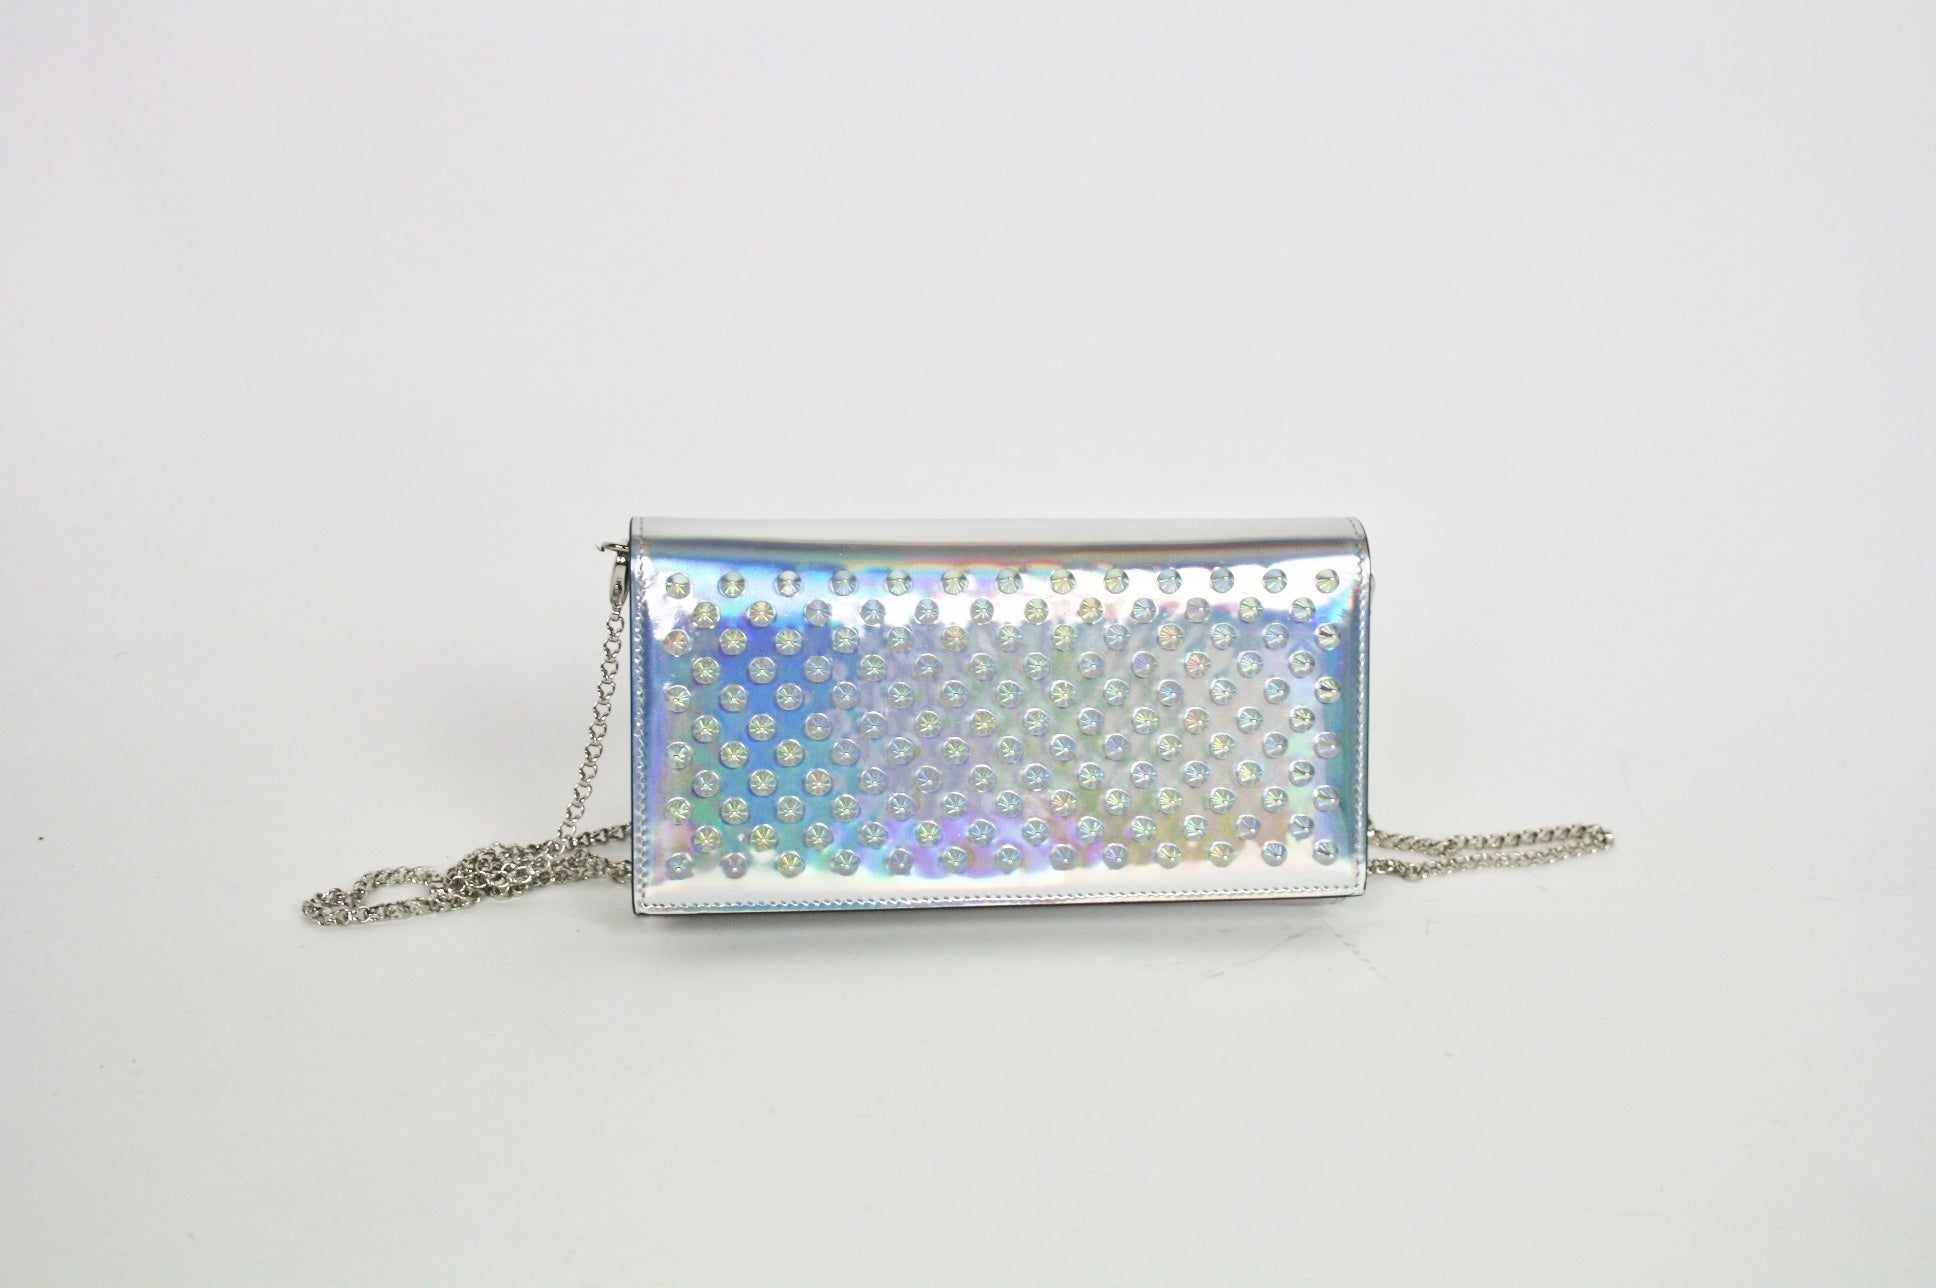 Louboutin Spiked iridescent bag - Iconics Preloved Luxury